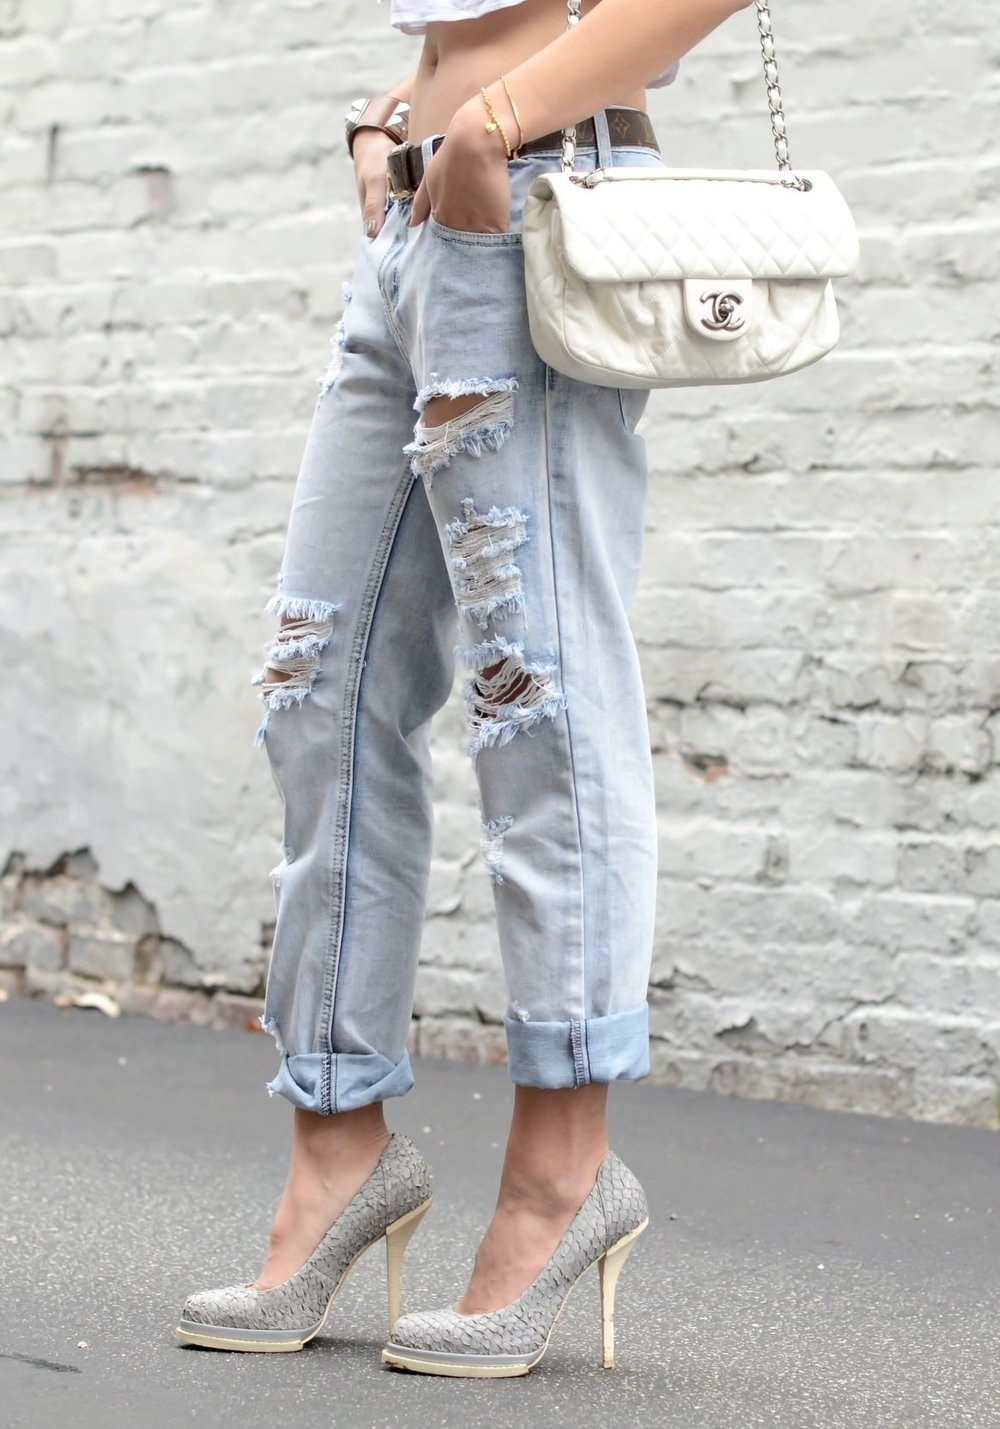 Just Goh With It - Outfits - Daily Denim - 3.jpg